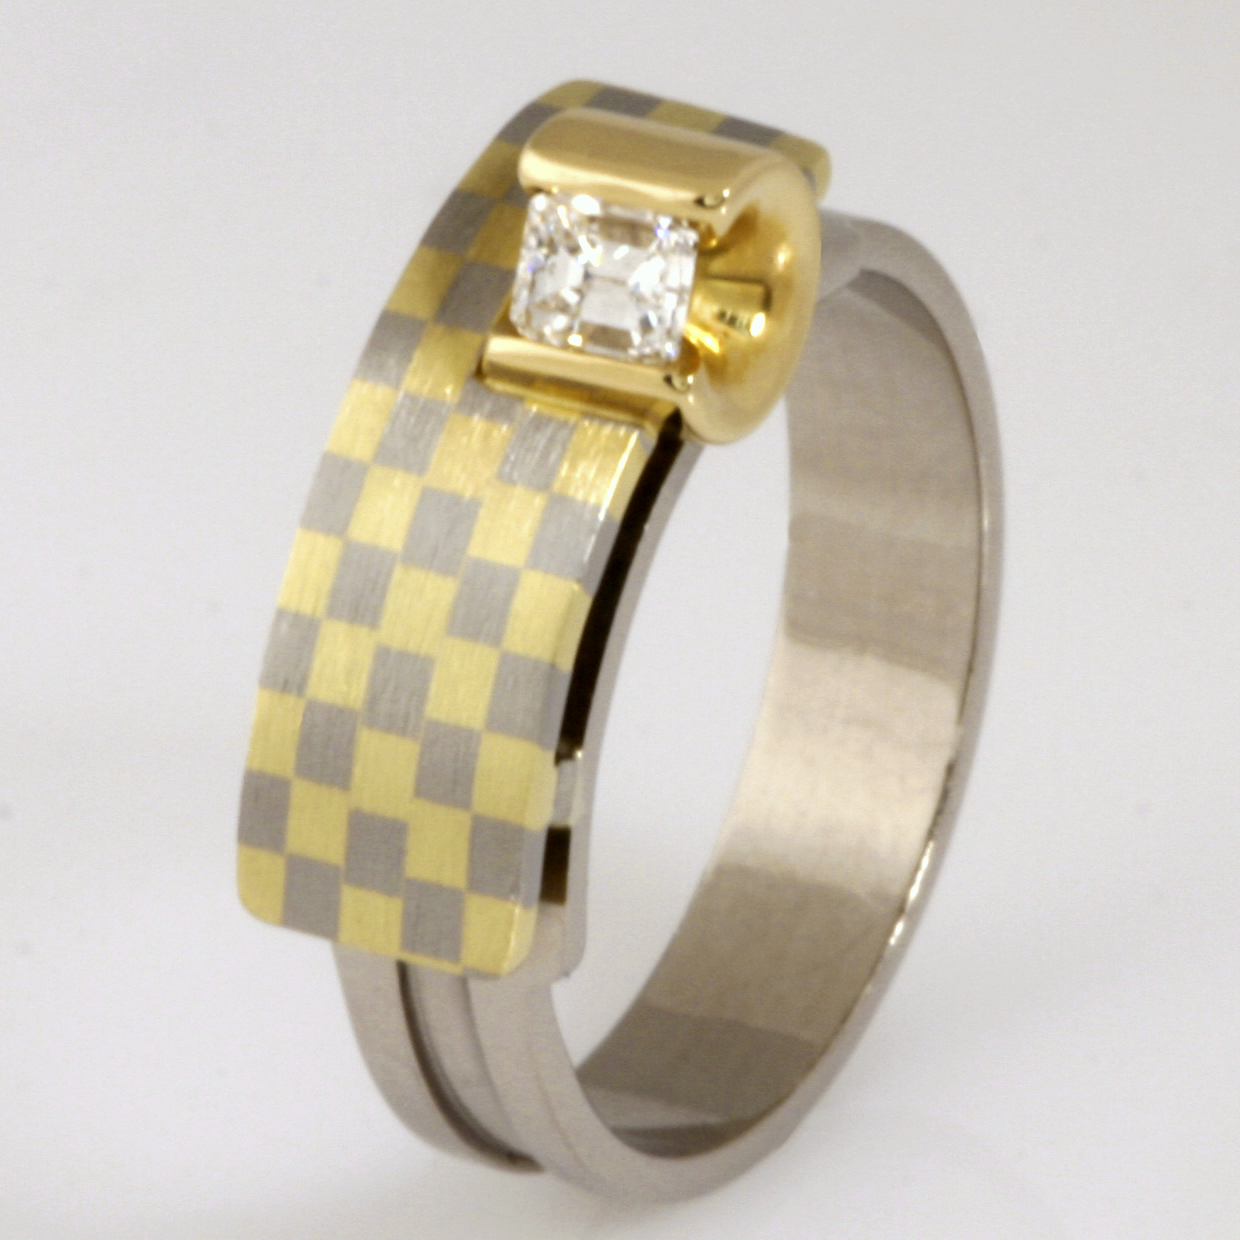 Handmade ladies 18ct yellow and white gold and Diamond 'Archie' design ring